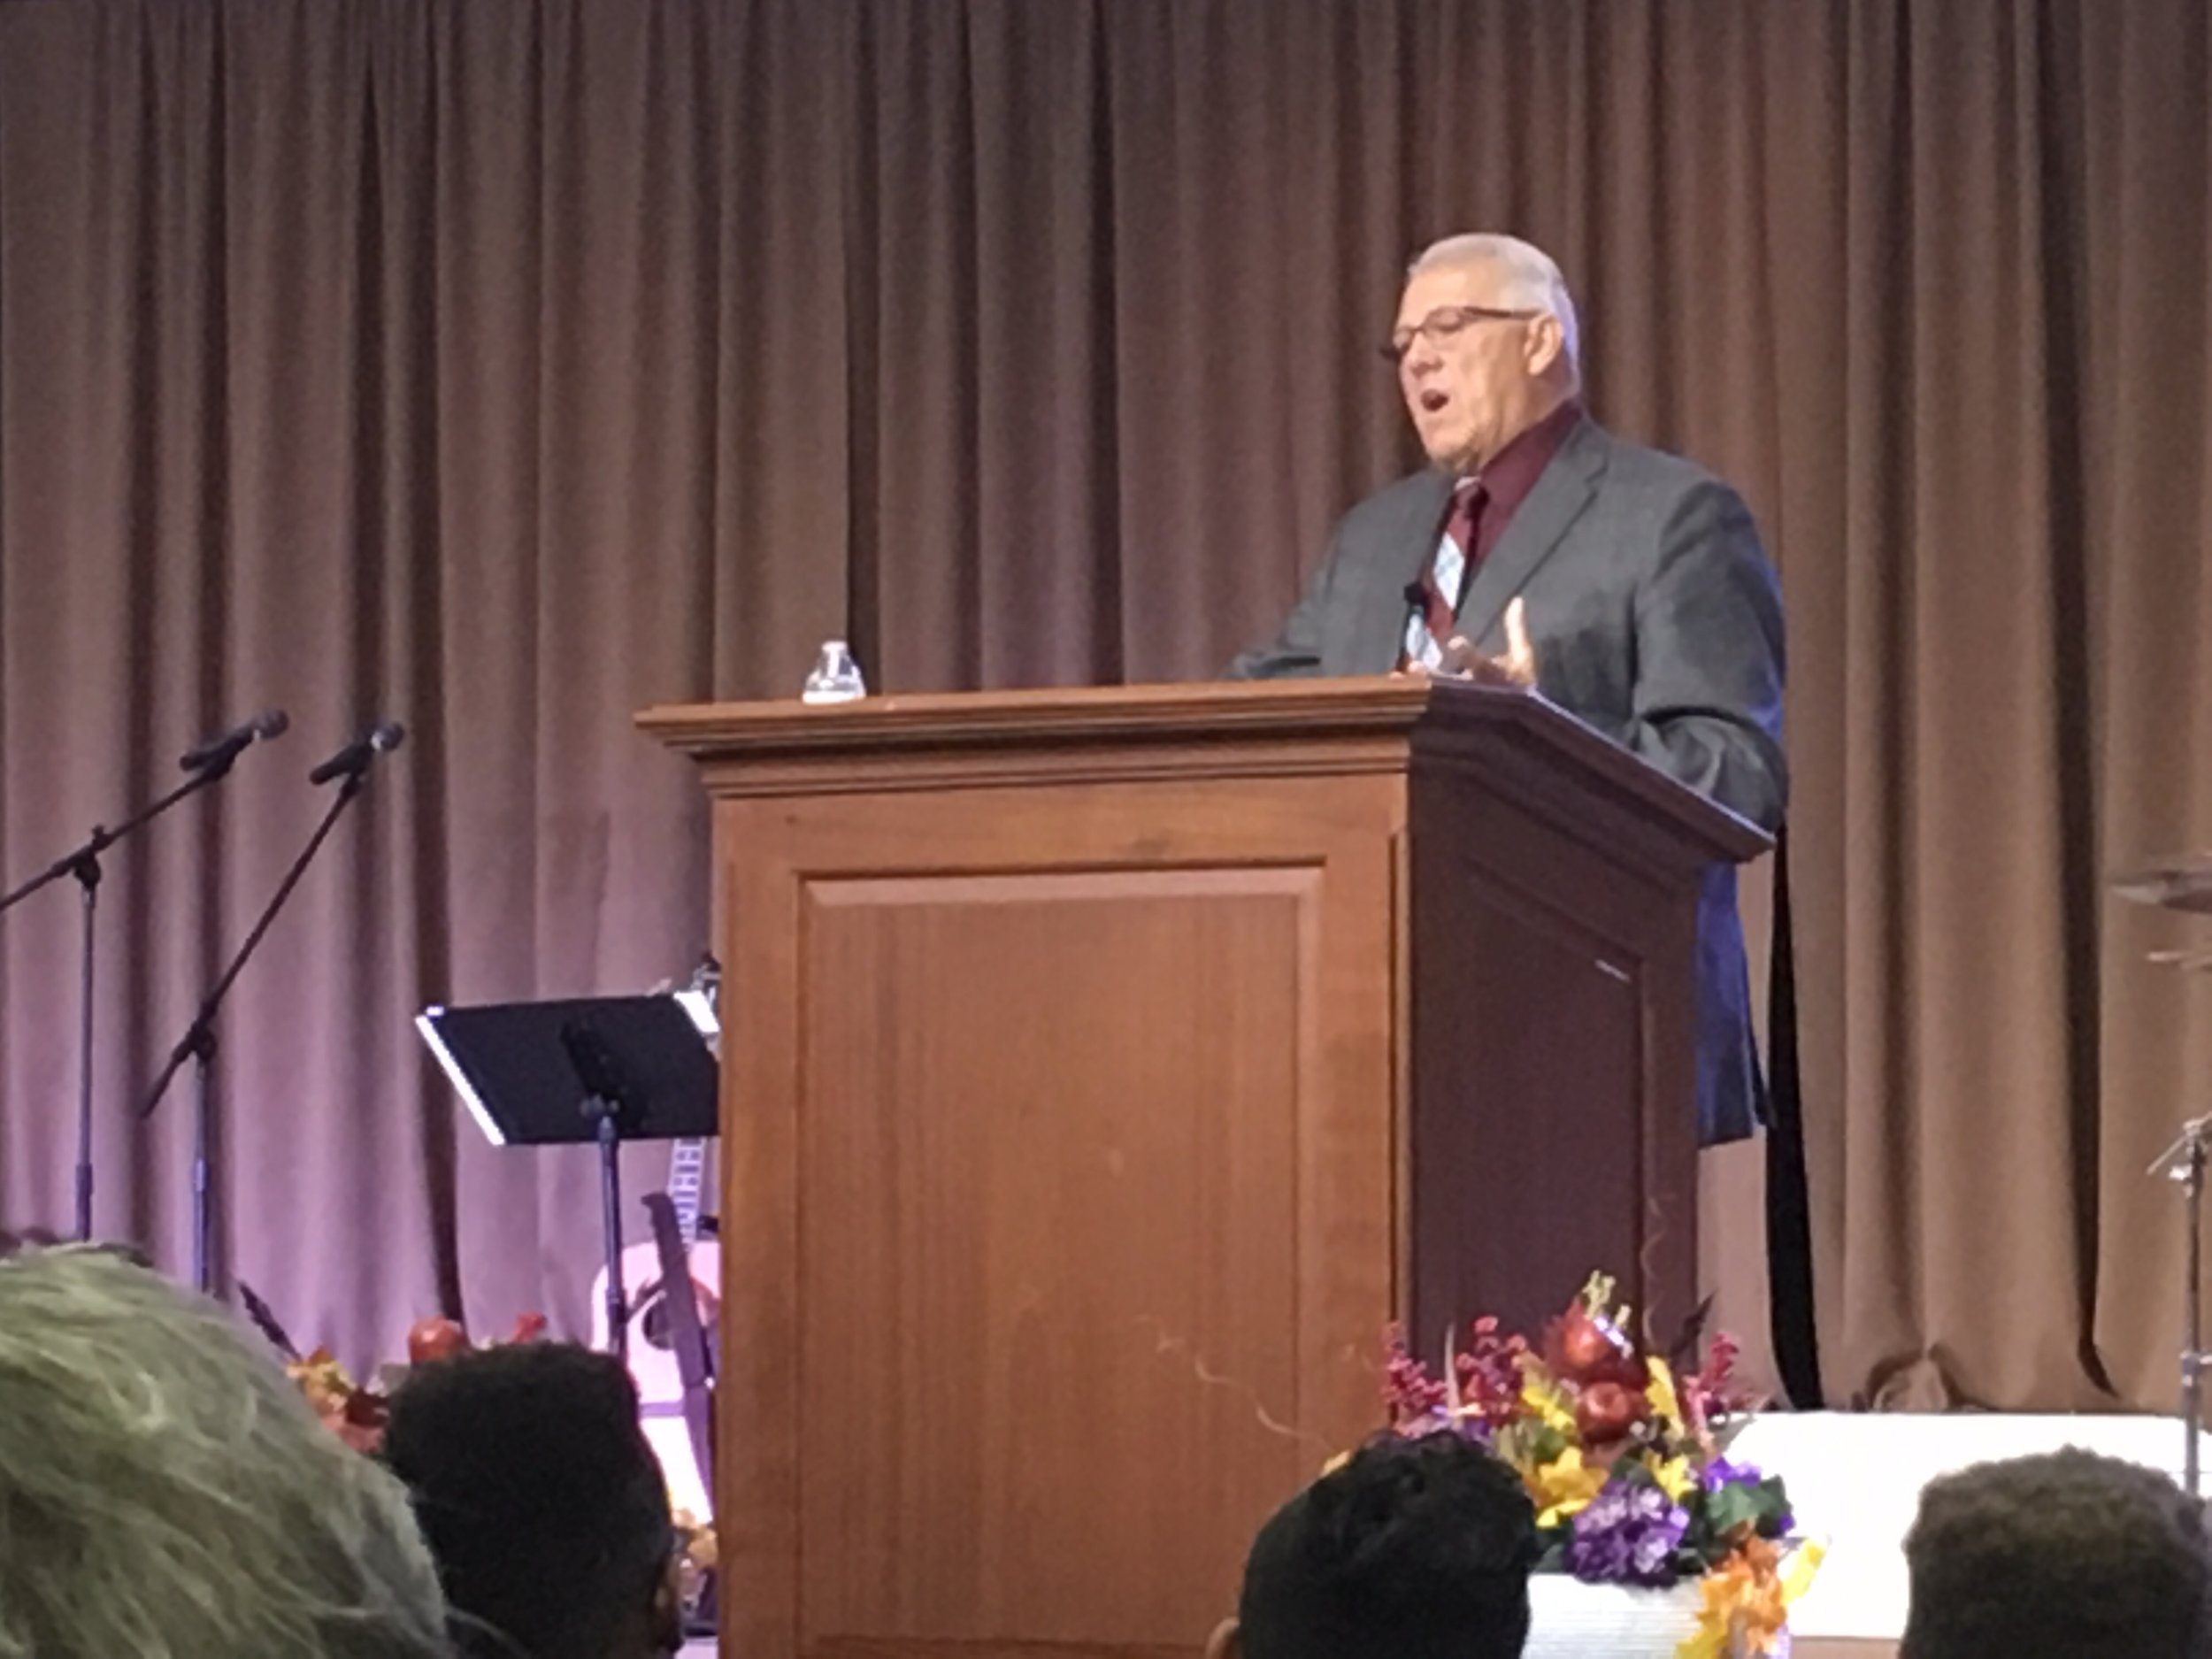 Pastor Louie Lobato from  The Potter's House Church in Bullhead City  preaching in  The Potter's House in Norfolk, VA